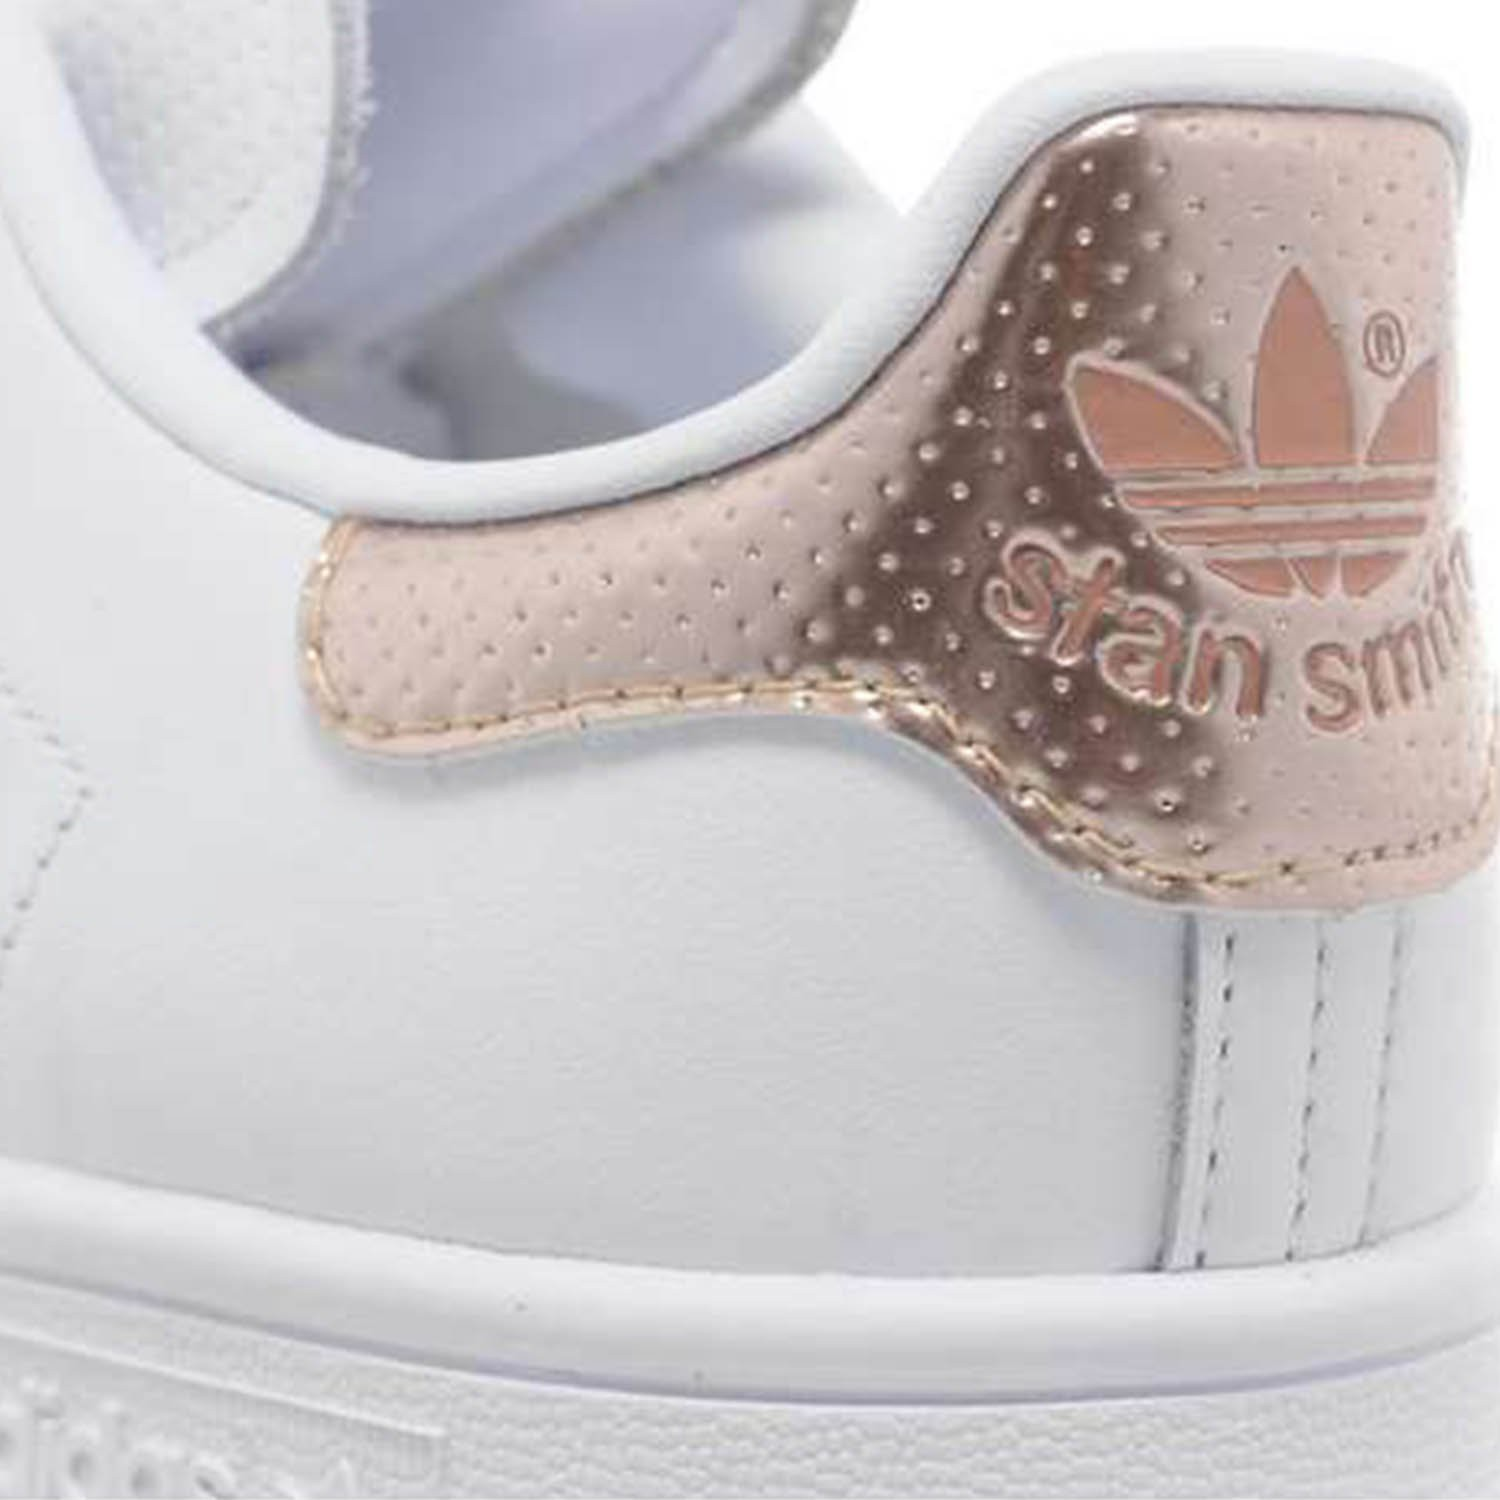 stan smith rose gold pas cher - www.automaty-zdarma.eu